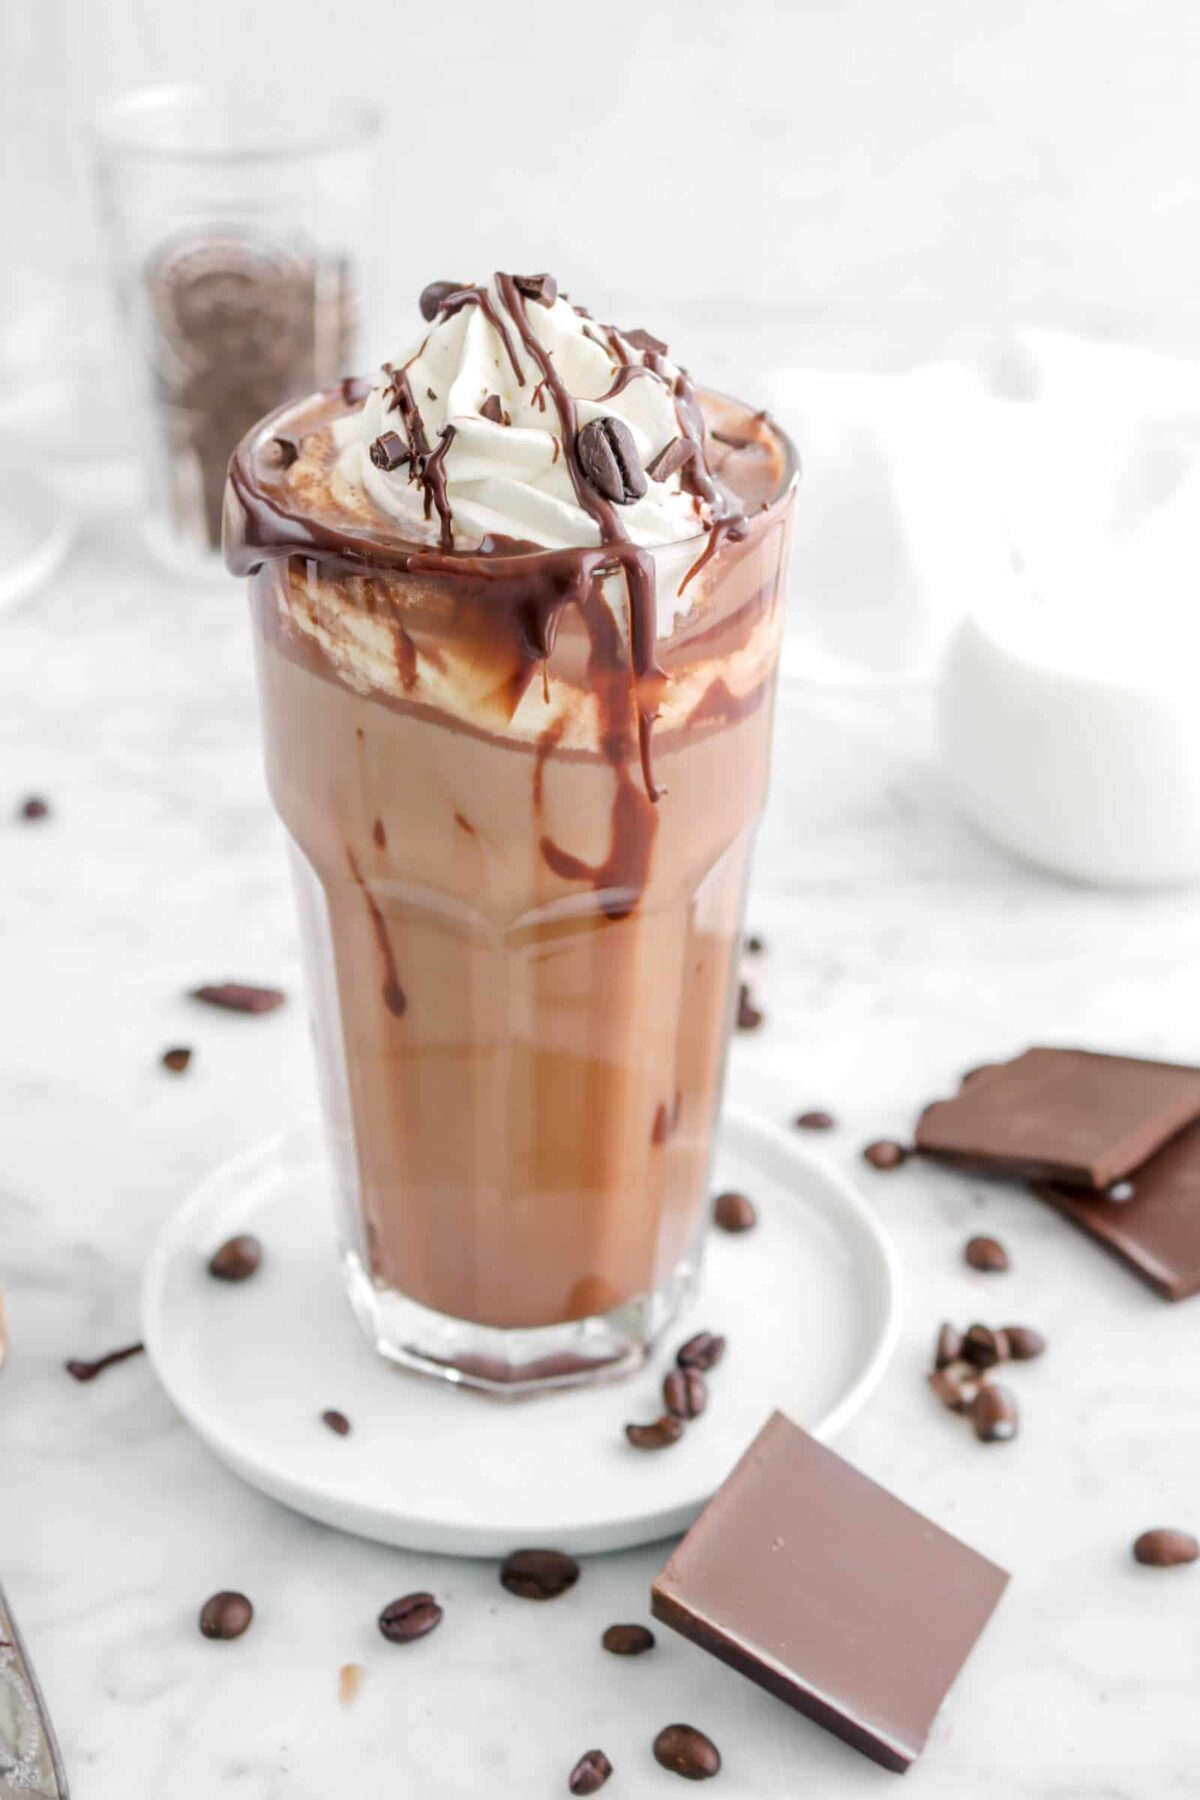 close up of mocha with chocolate sauce, coffee beans, and whipped cream